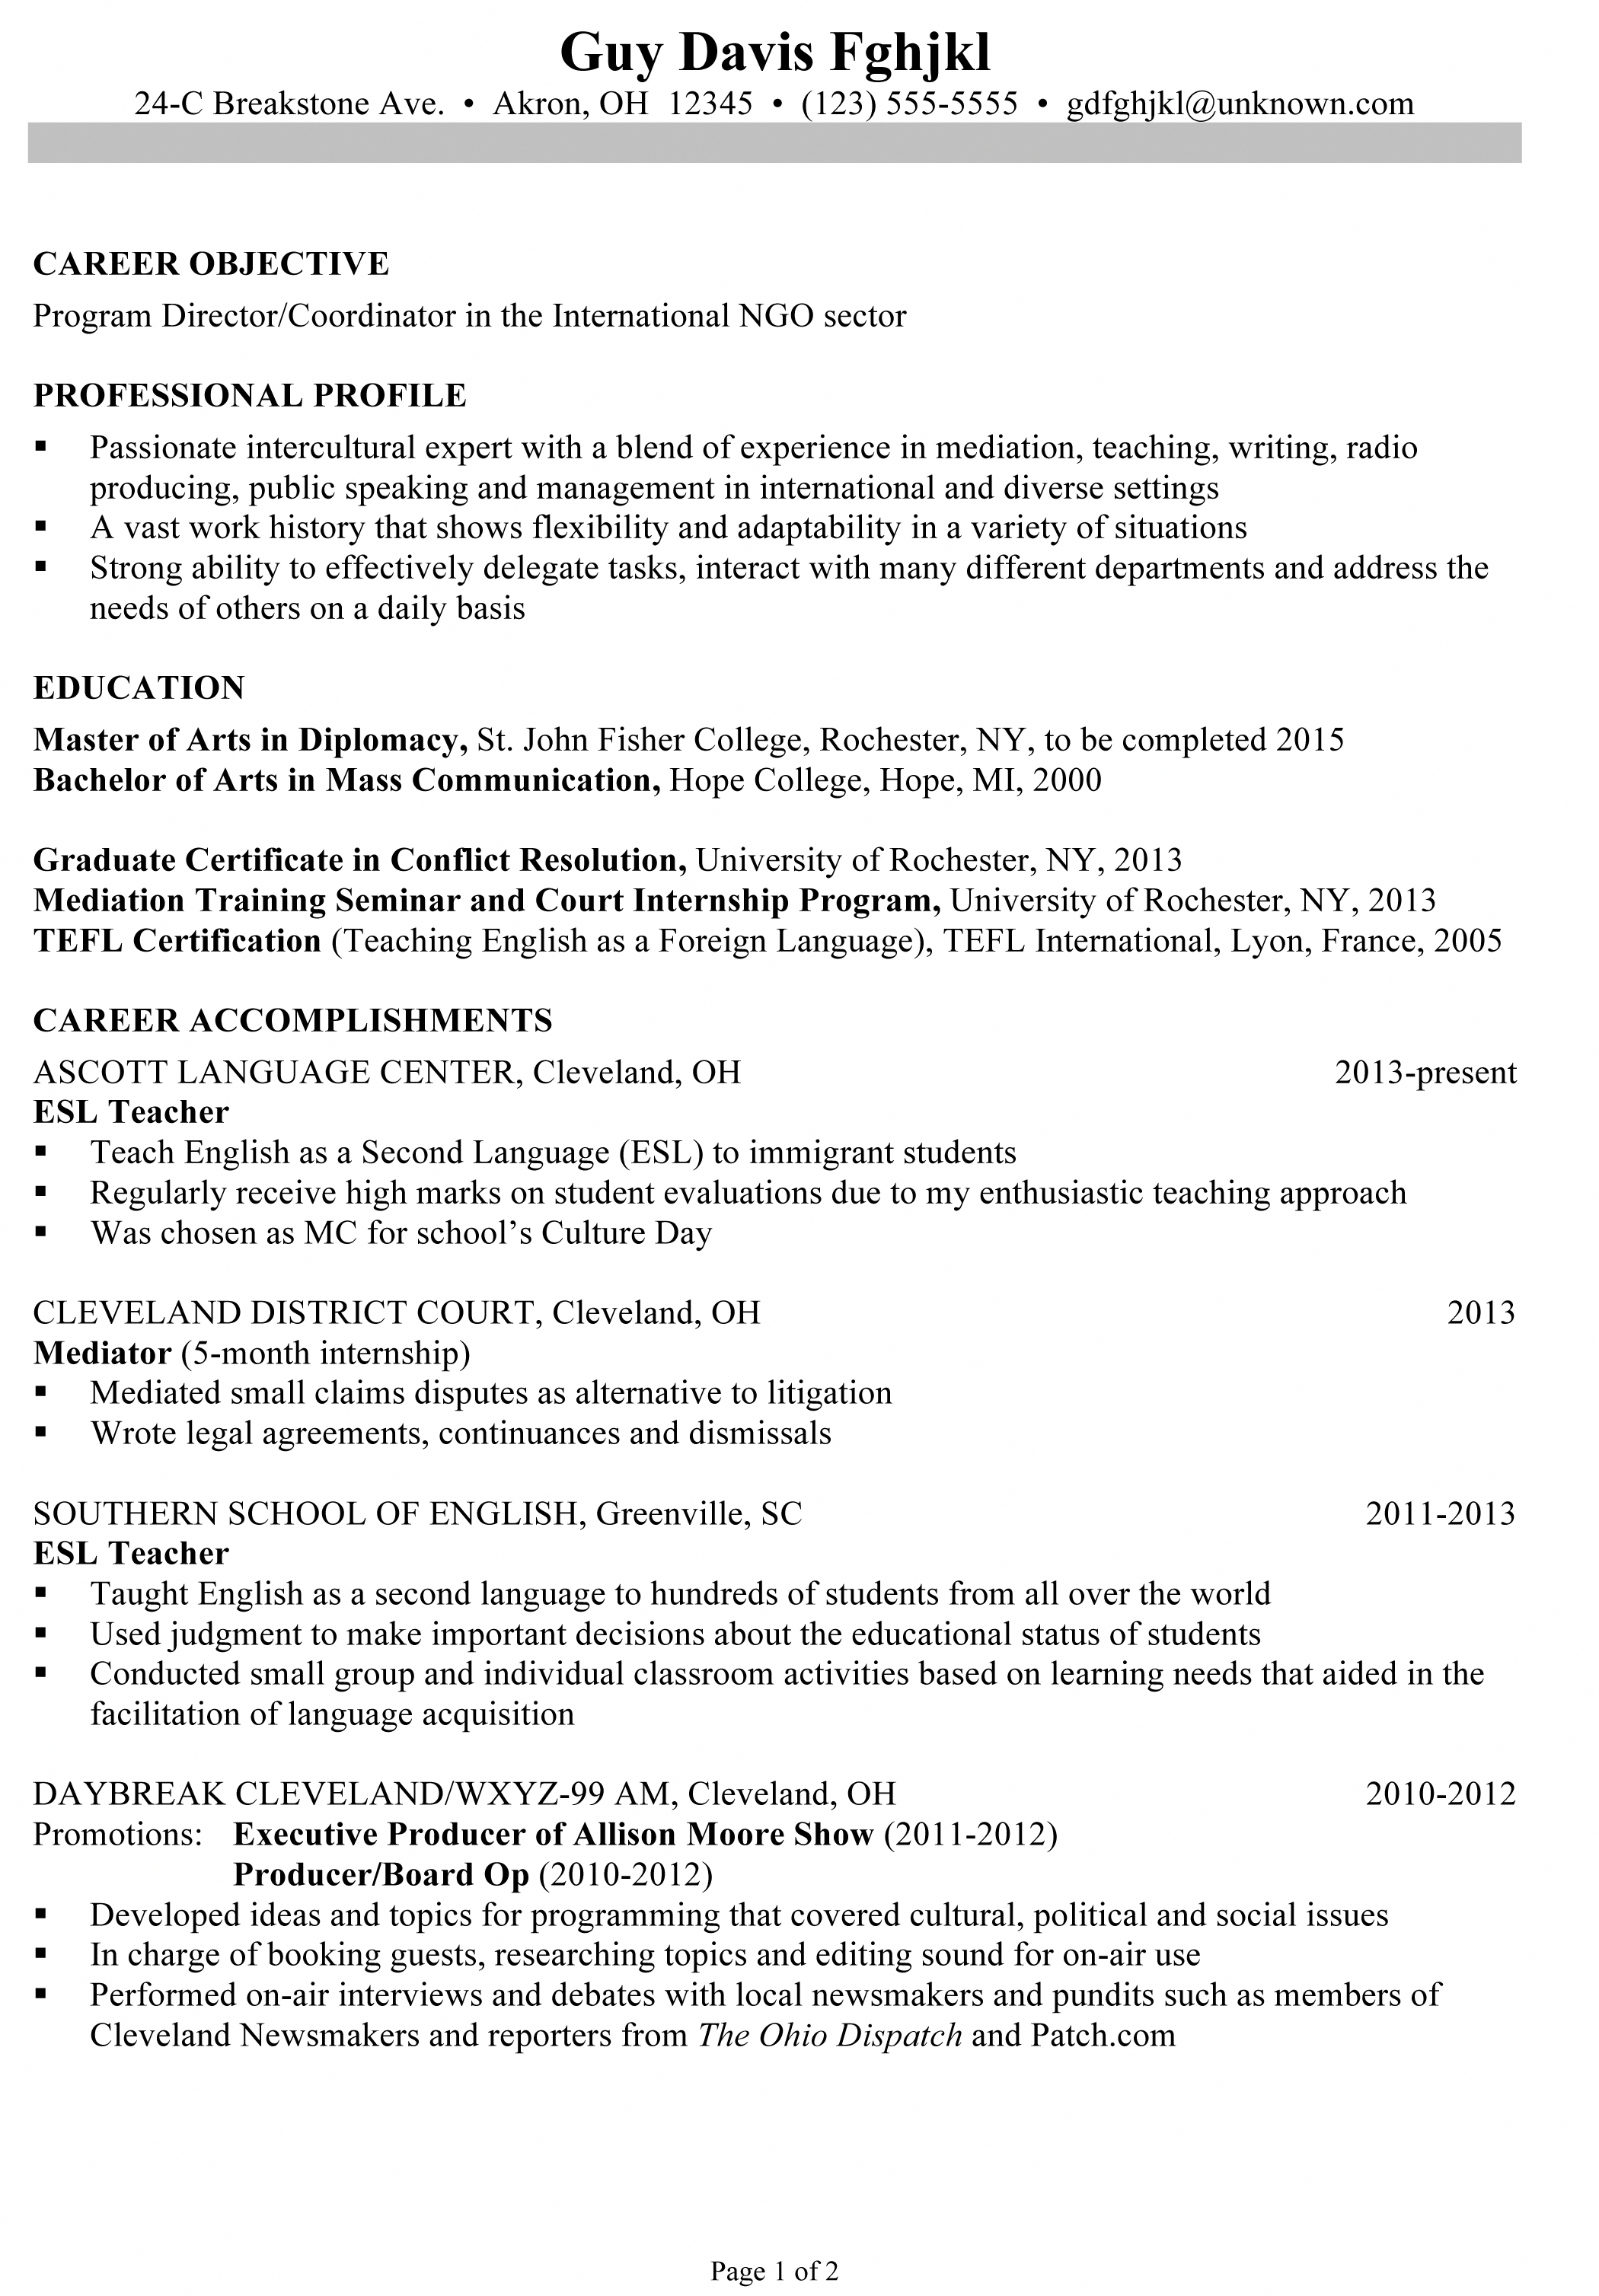 professional summary resume example best templatesample resumes cover letter examples medicalwriterjobs